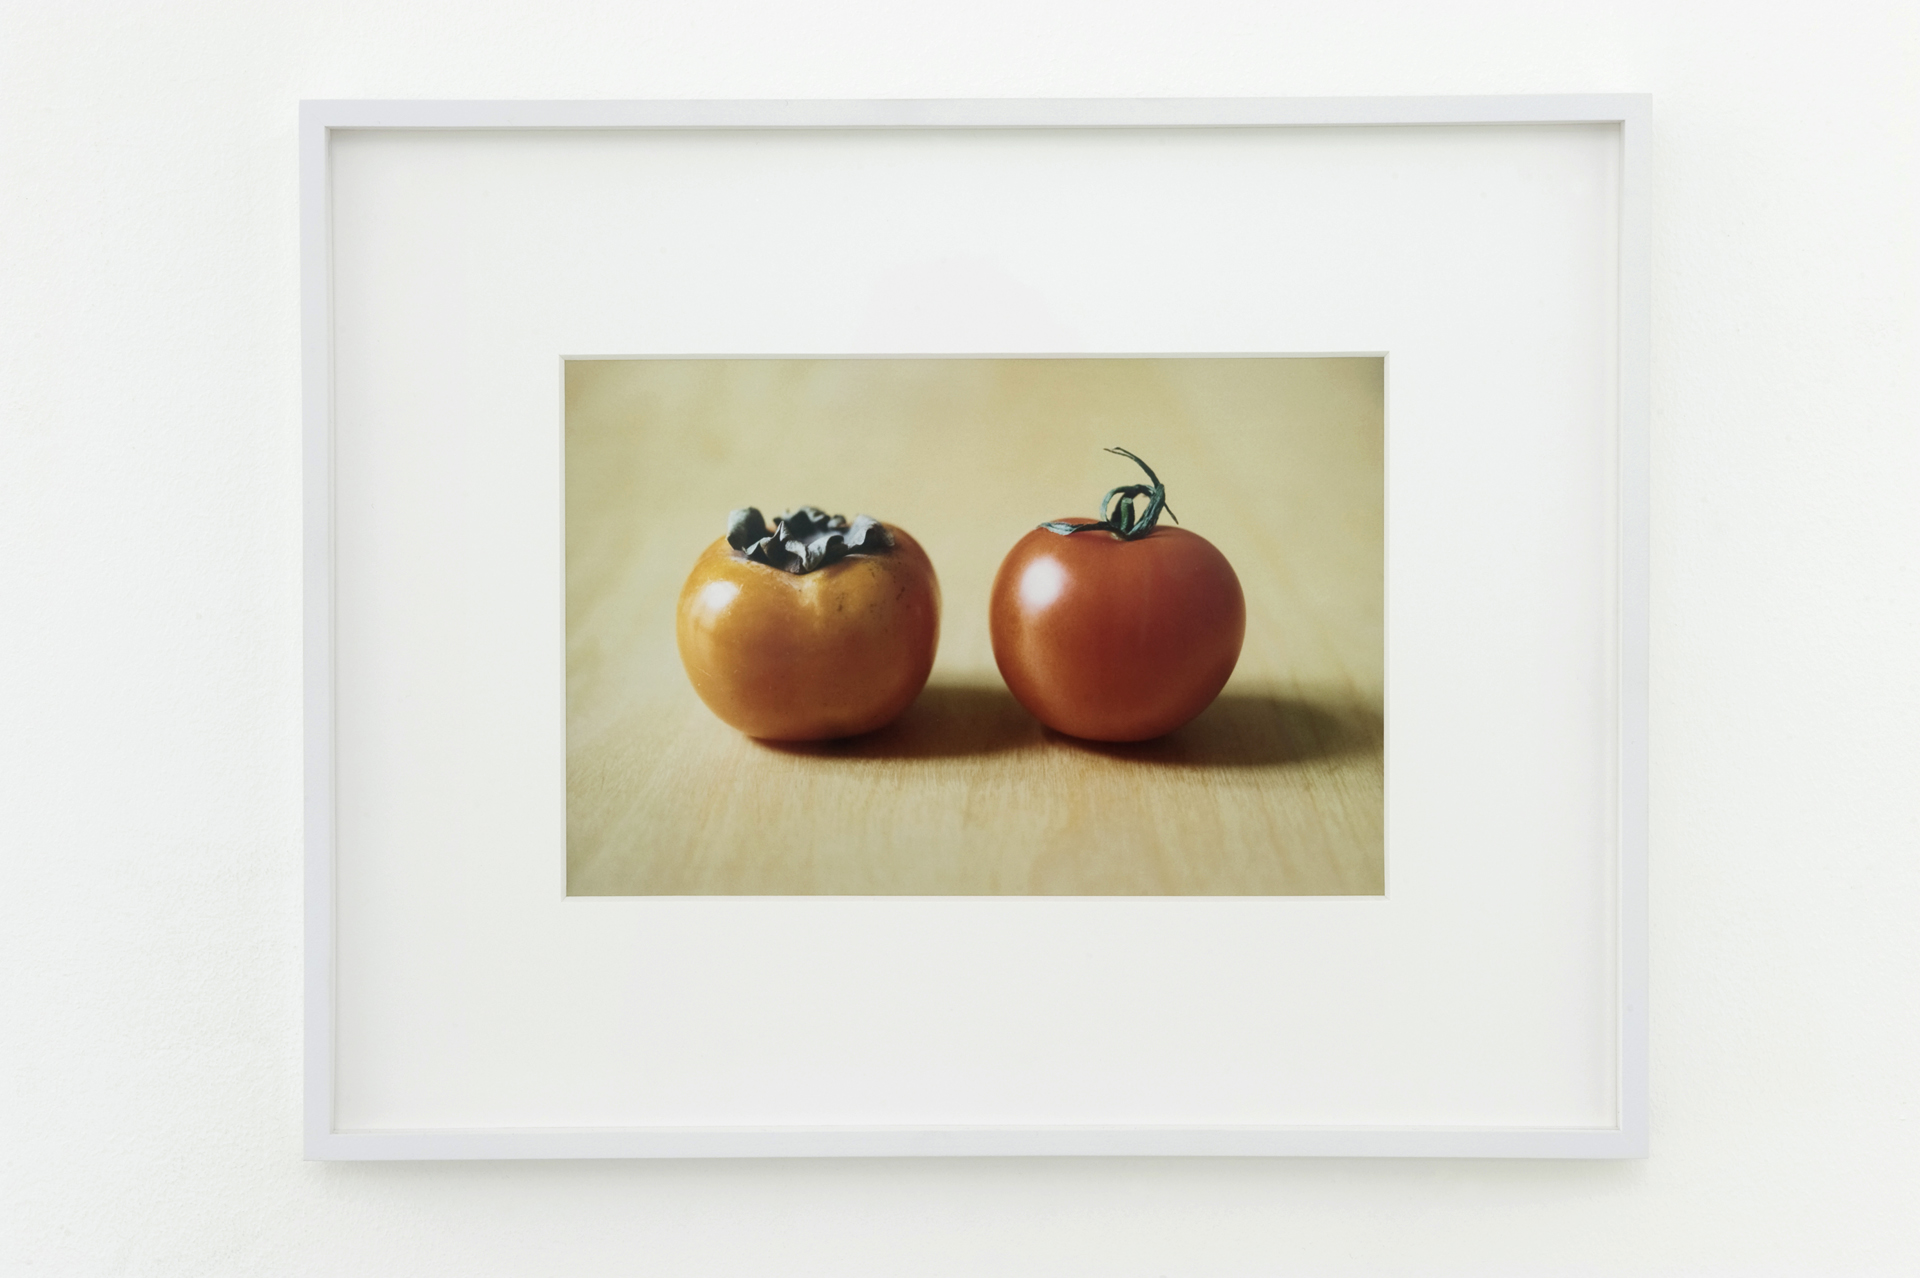 Shimabuku, Kaki and Tomato, 2008. framed c-print on aluminium, frame 36.6 x 46.2 cm; 14.4 x 18.1 in; without frame 18.8 x 28.4 cm; 7.4 x 11.1 in.